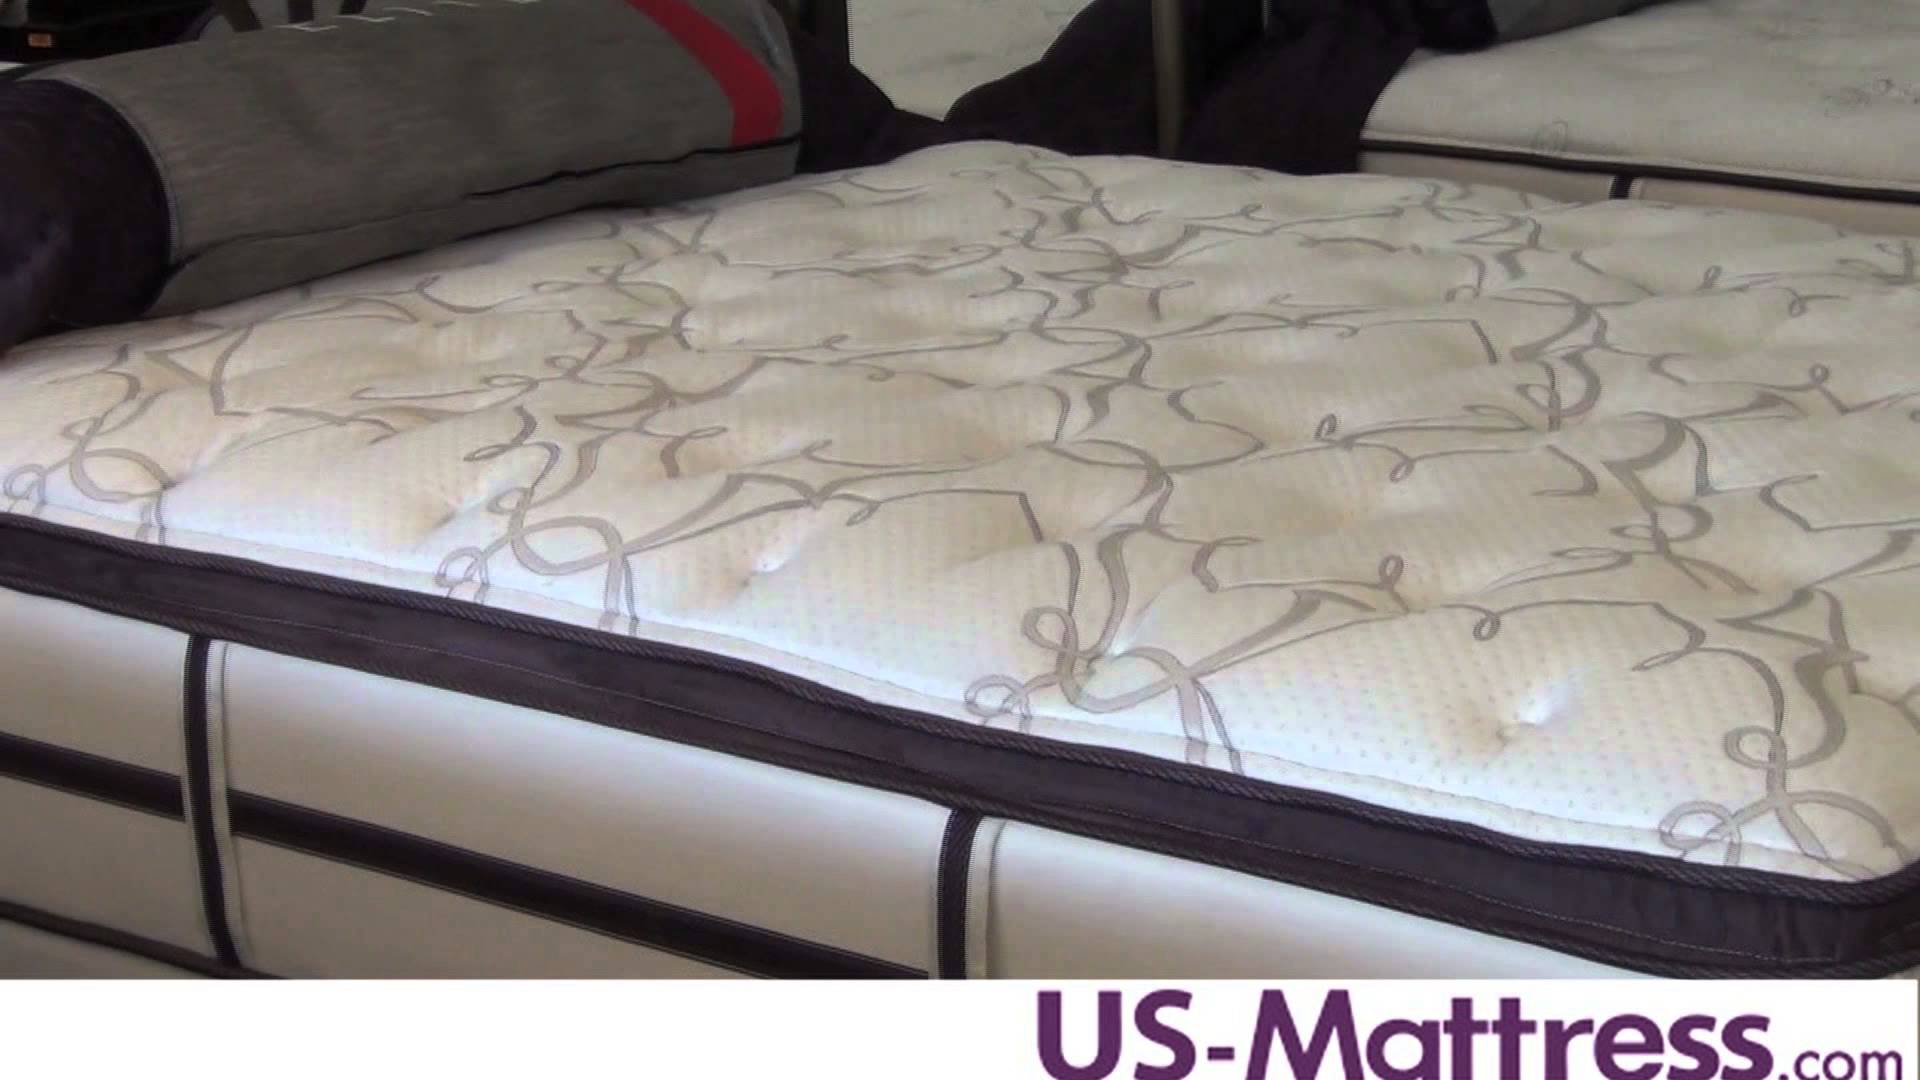 Beautyrest Shakespeare | Simmons Beautyrest Mattress | Simmons Beautyrest Mattress Cover